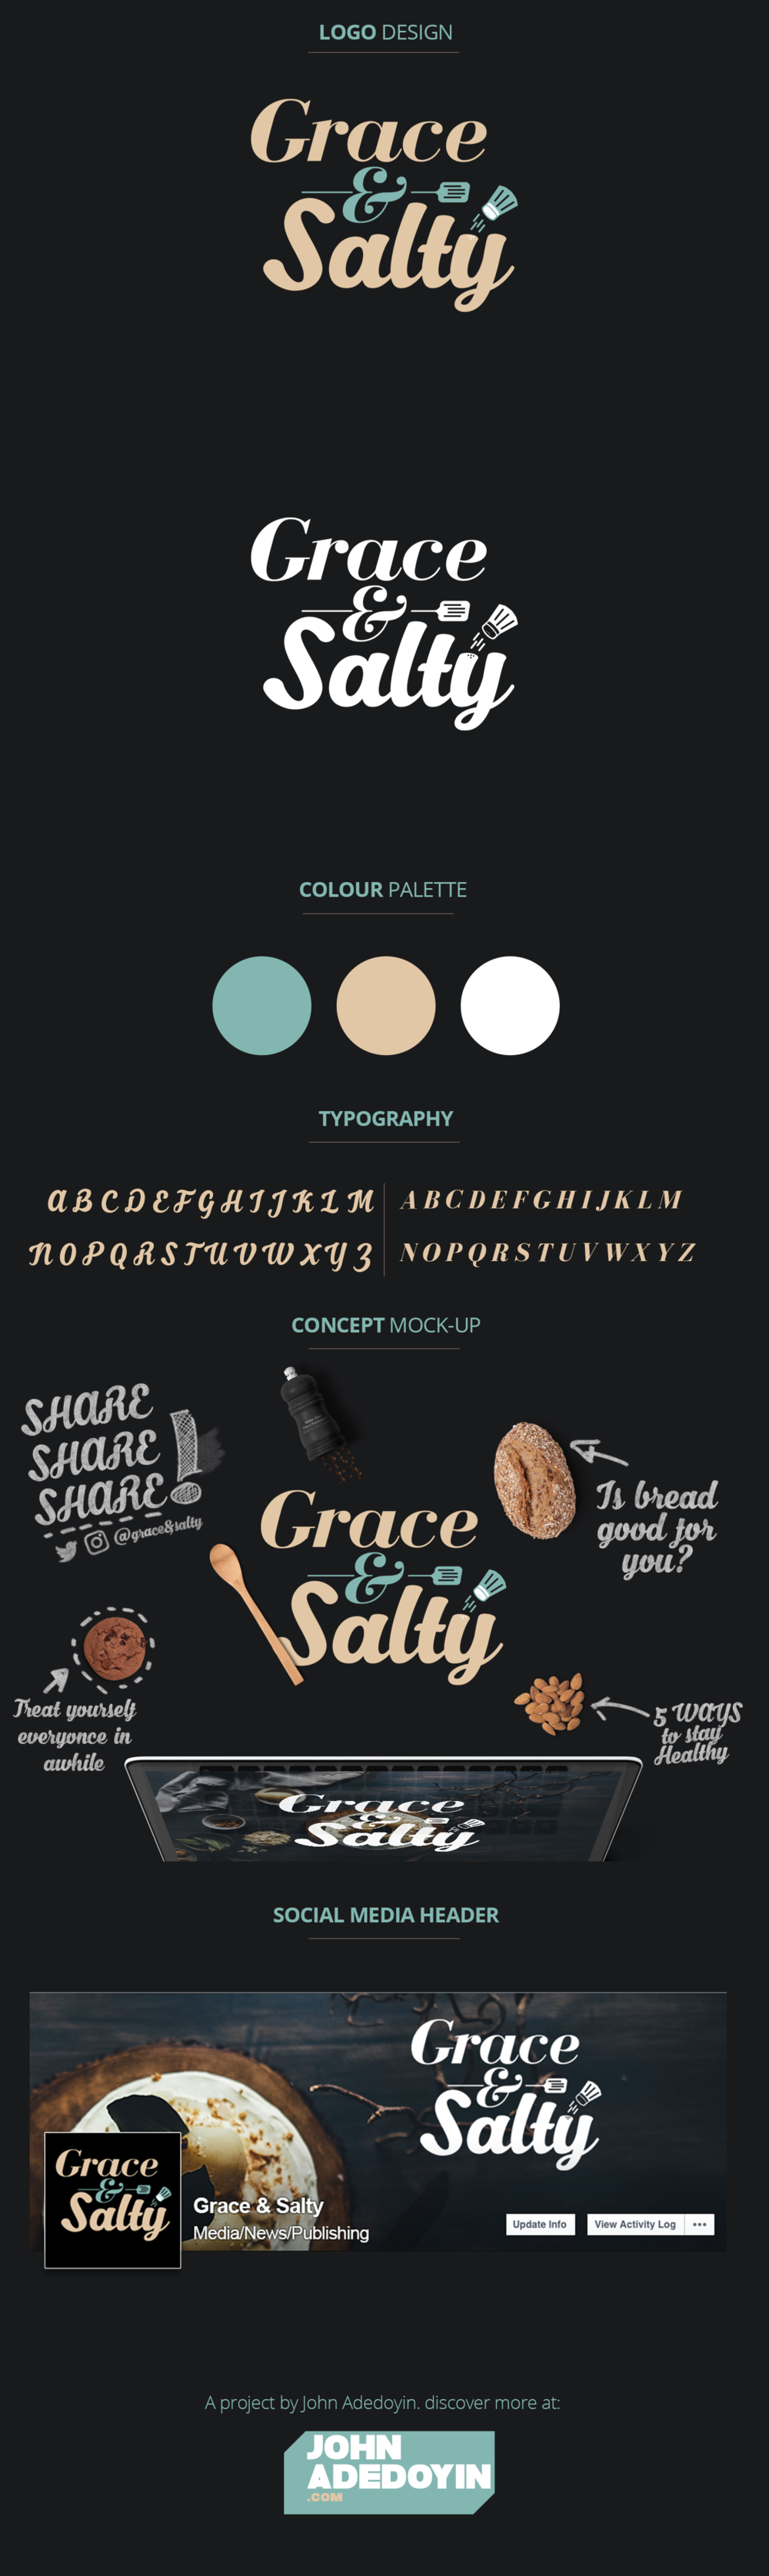 Grace and Salty Branding